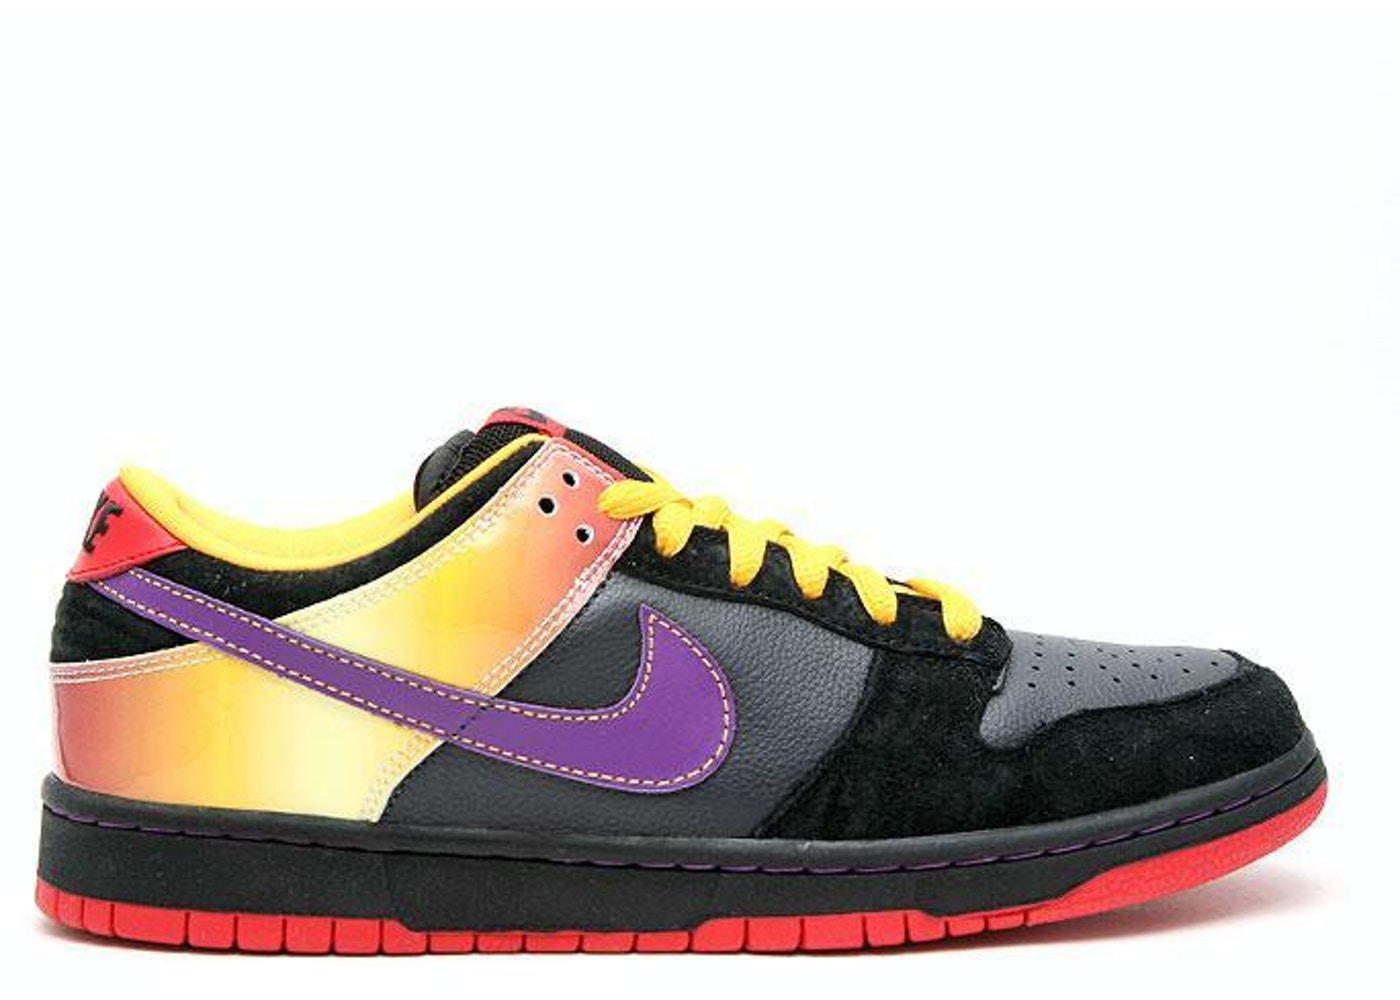 hot sales 32a96 1679b Nike Dunk SB Low Appetite for Destruction